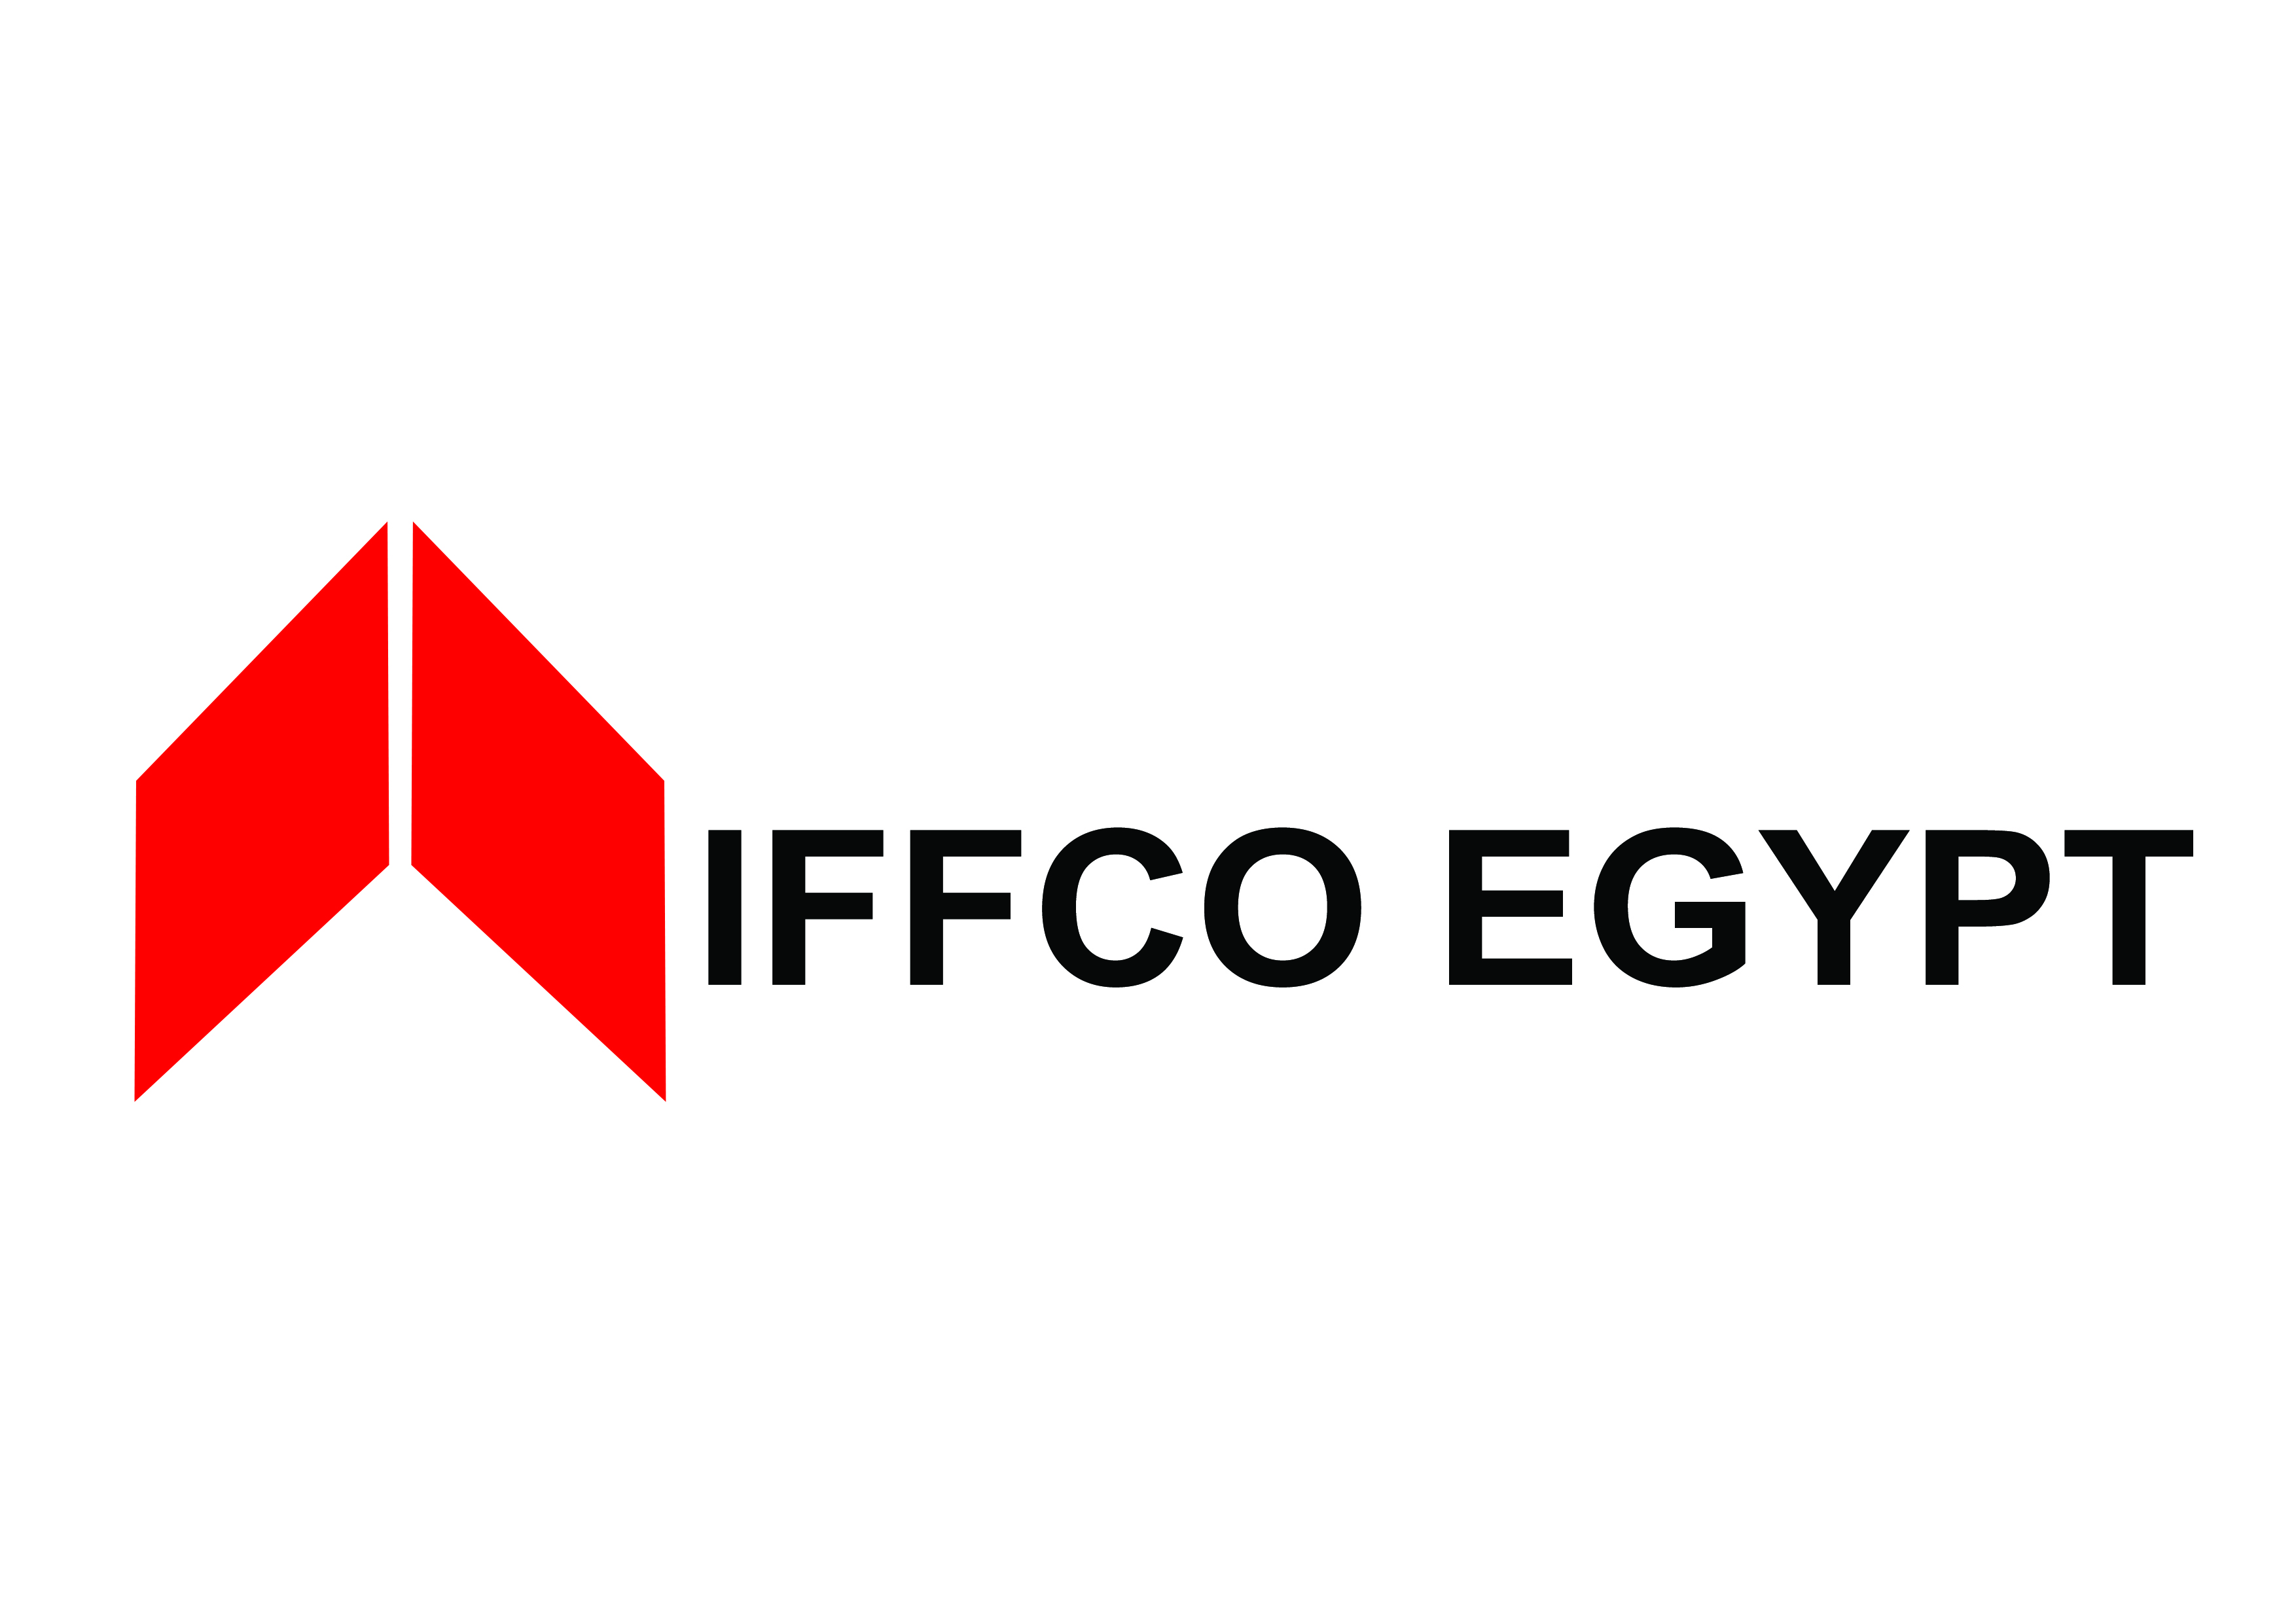 IFFCO Egypt for edible oils and fats